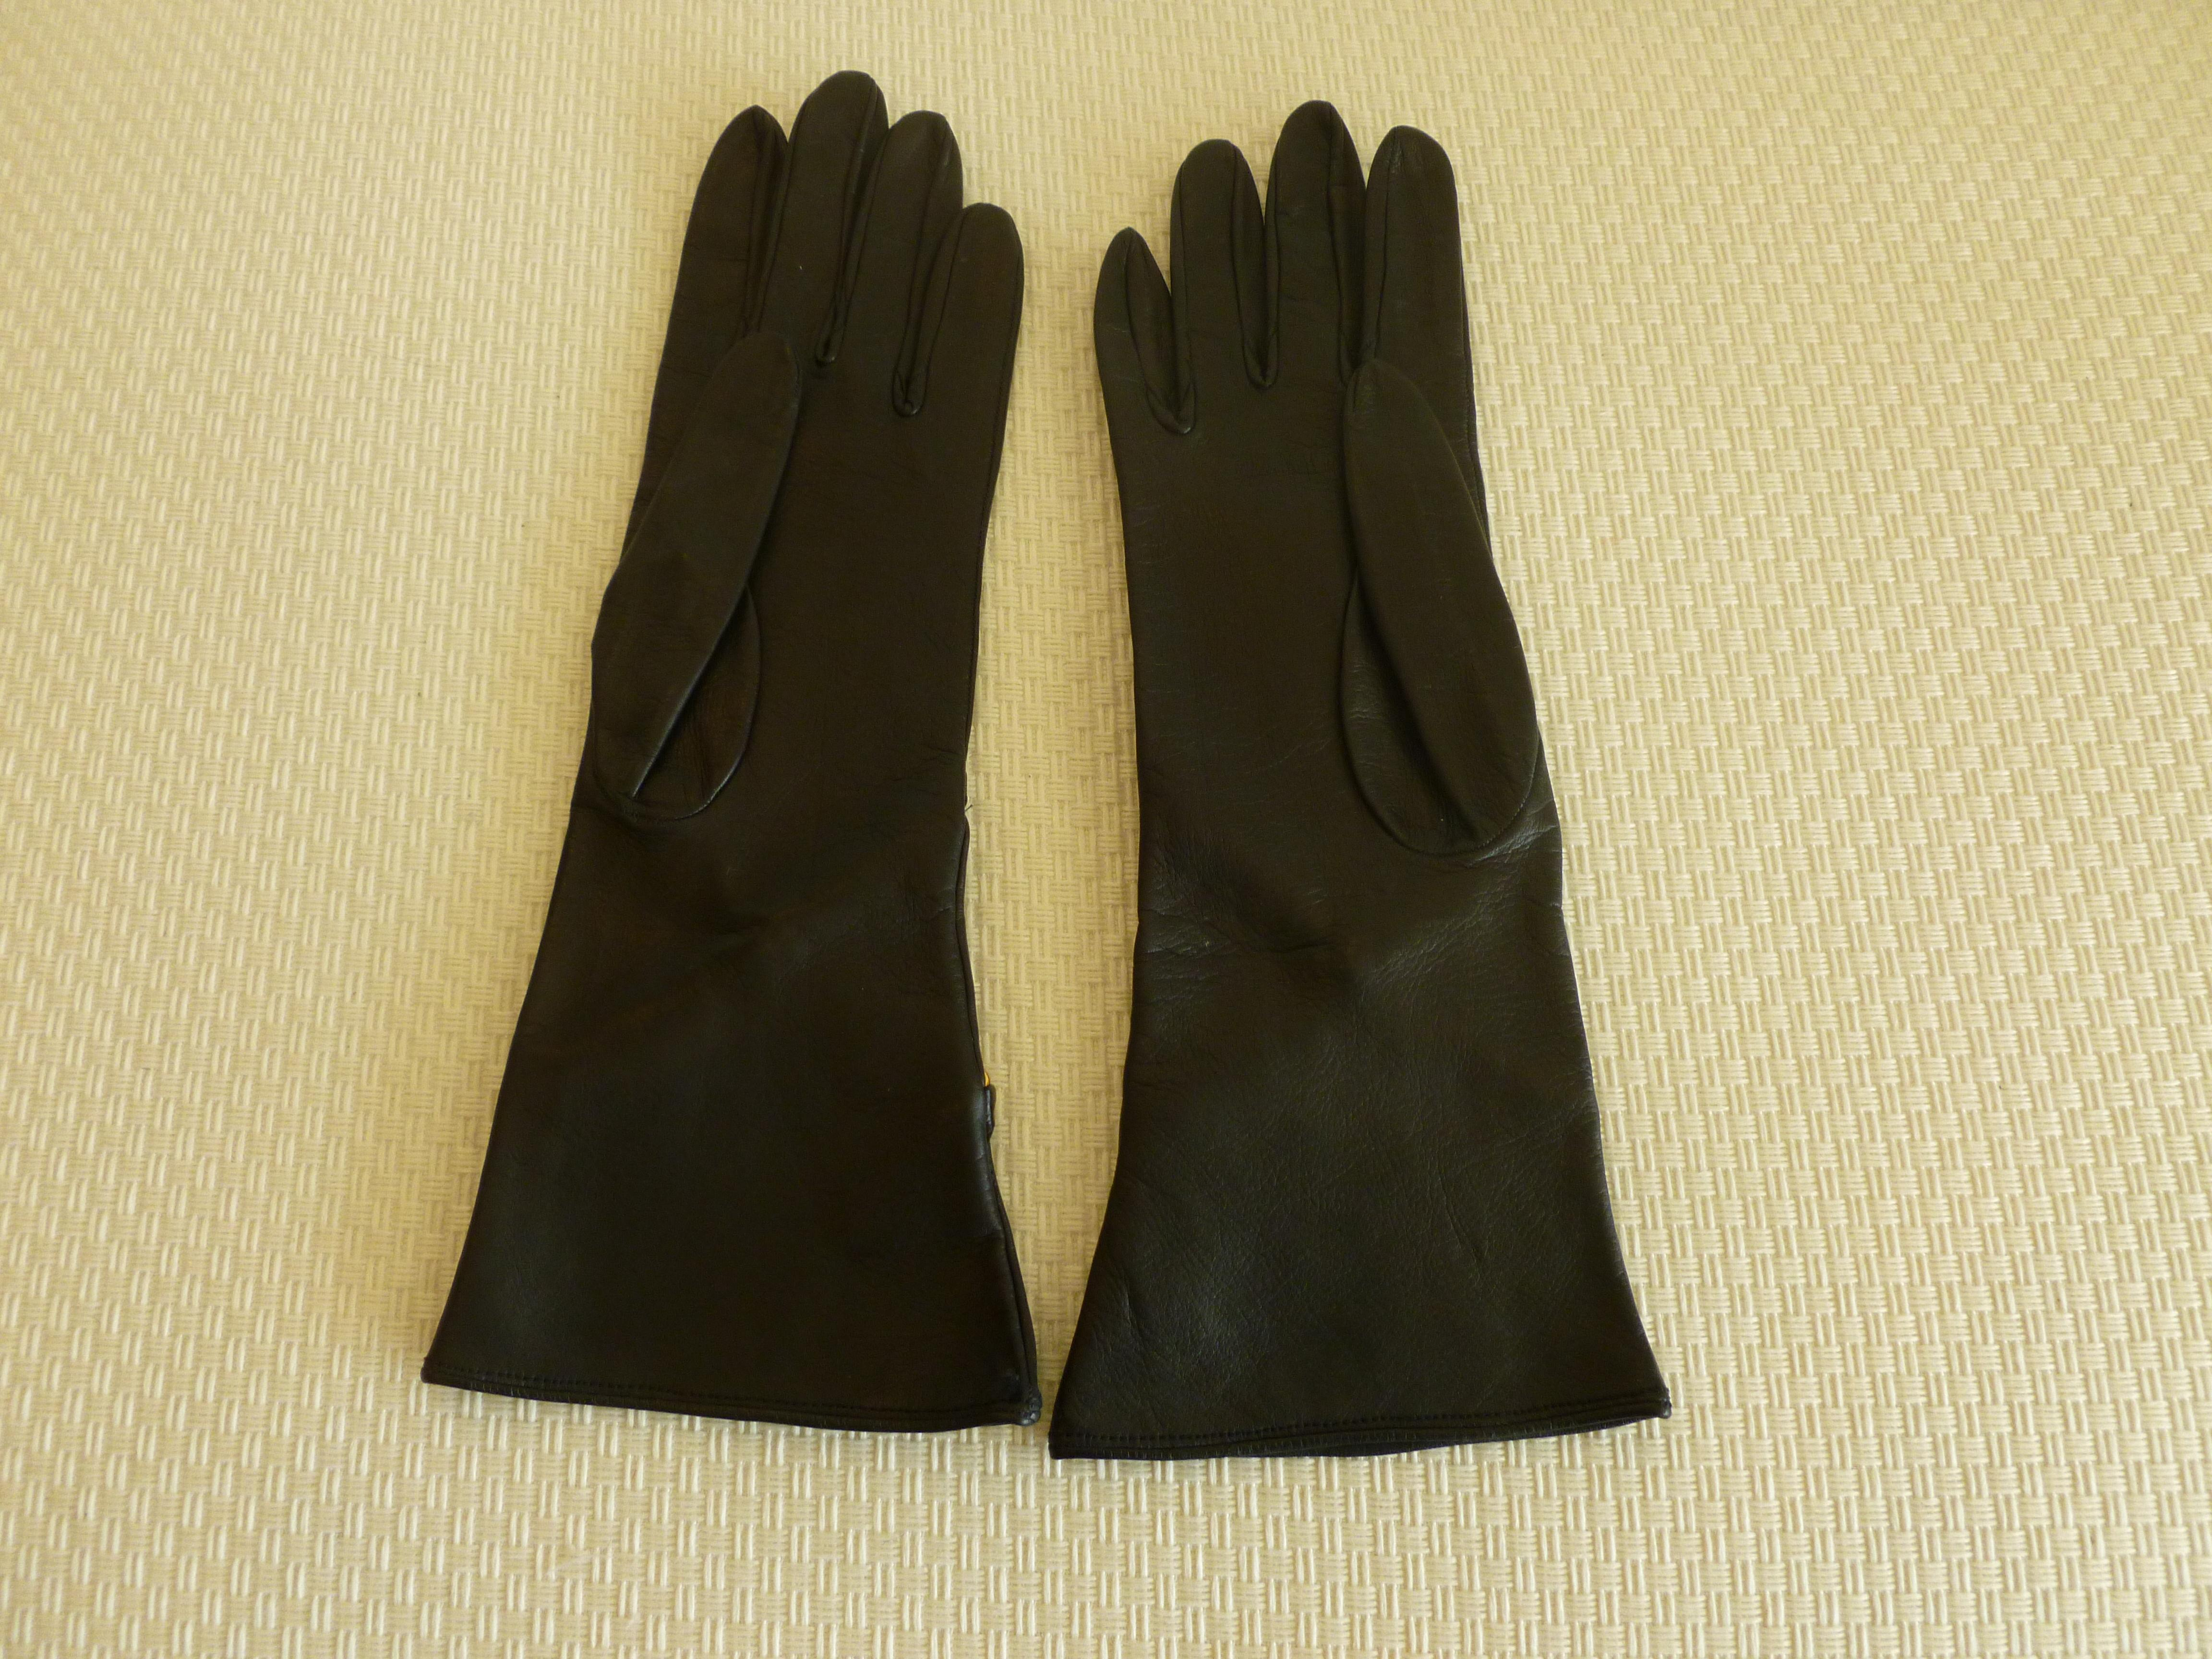 f6b3c5f436f22 Pair of Back Leather and Brass Chain Paloma Picasso Gloves For Sale at  1stdibs